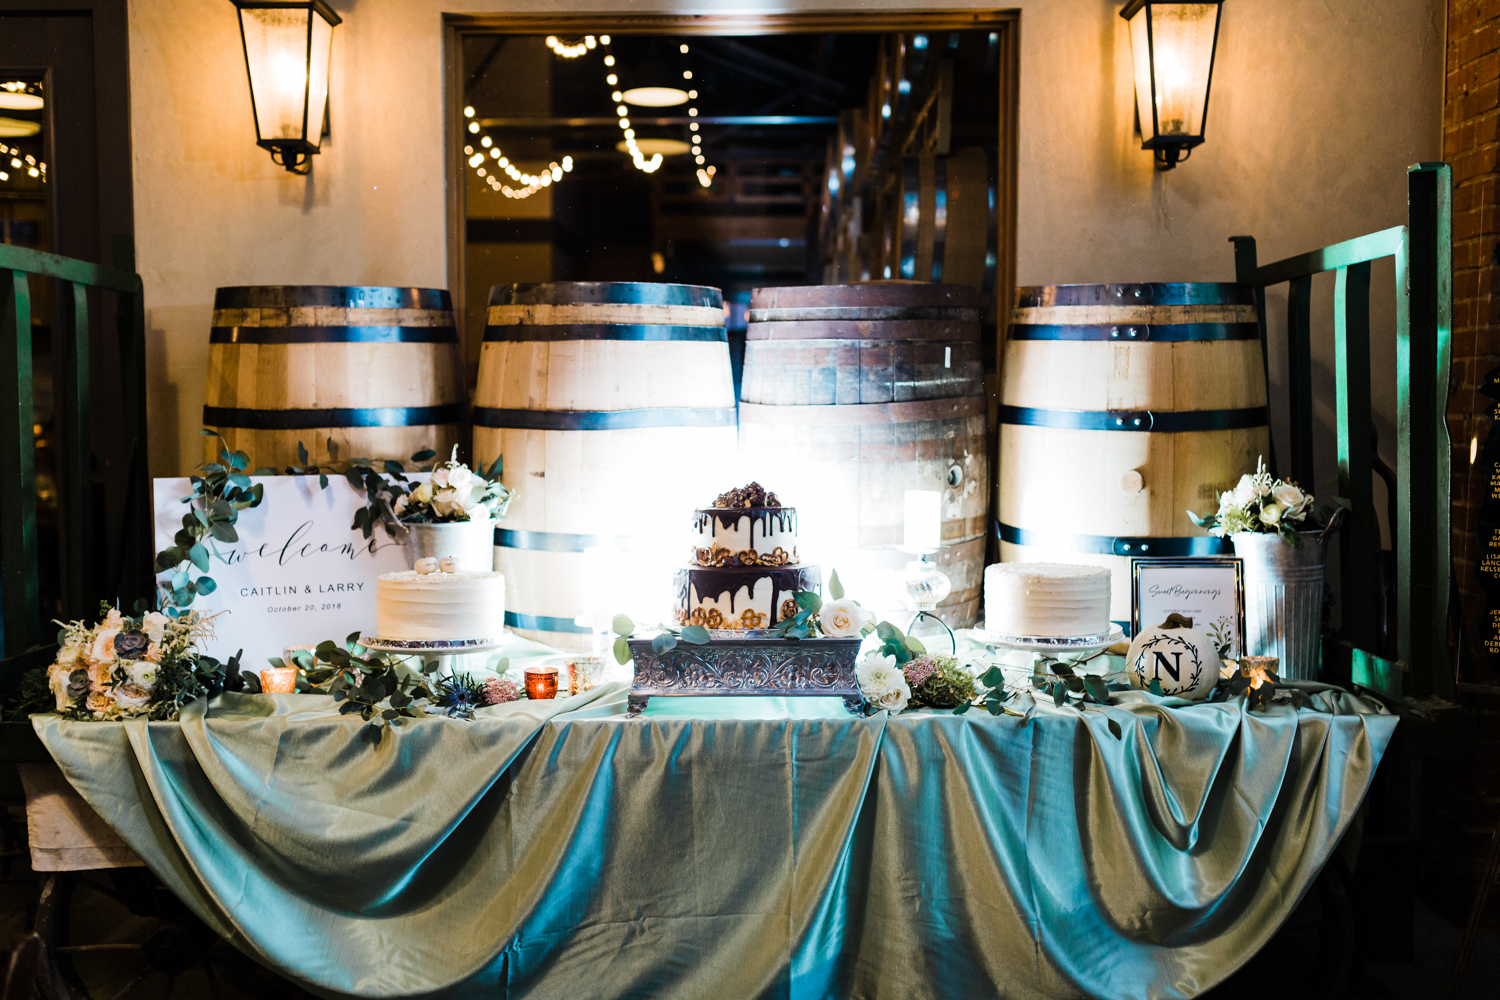 Wedding cake inspo - best cinematographer and videographer in MD